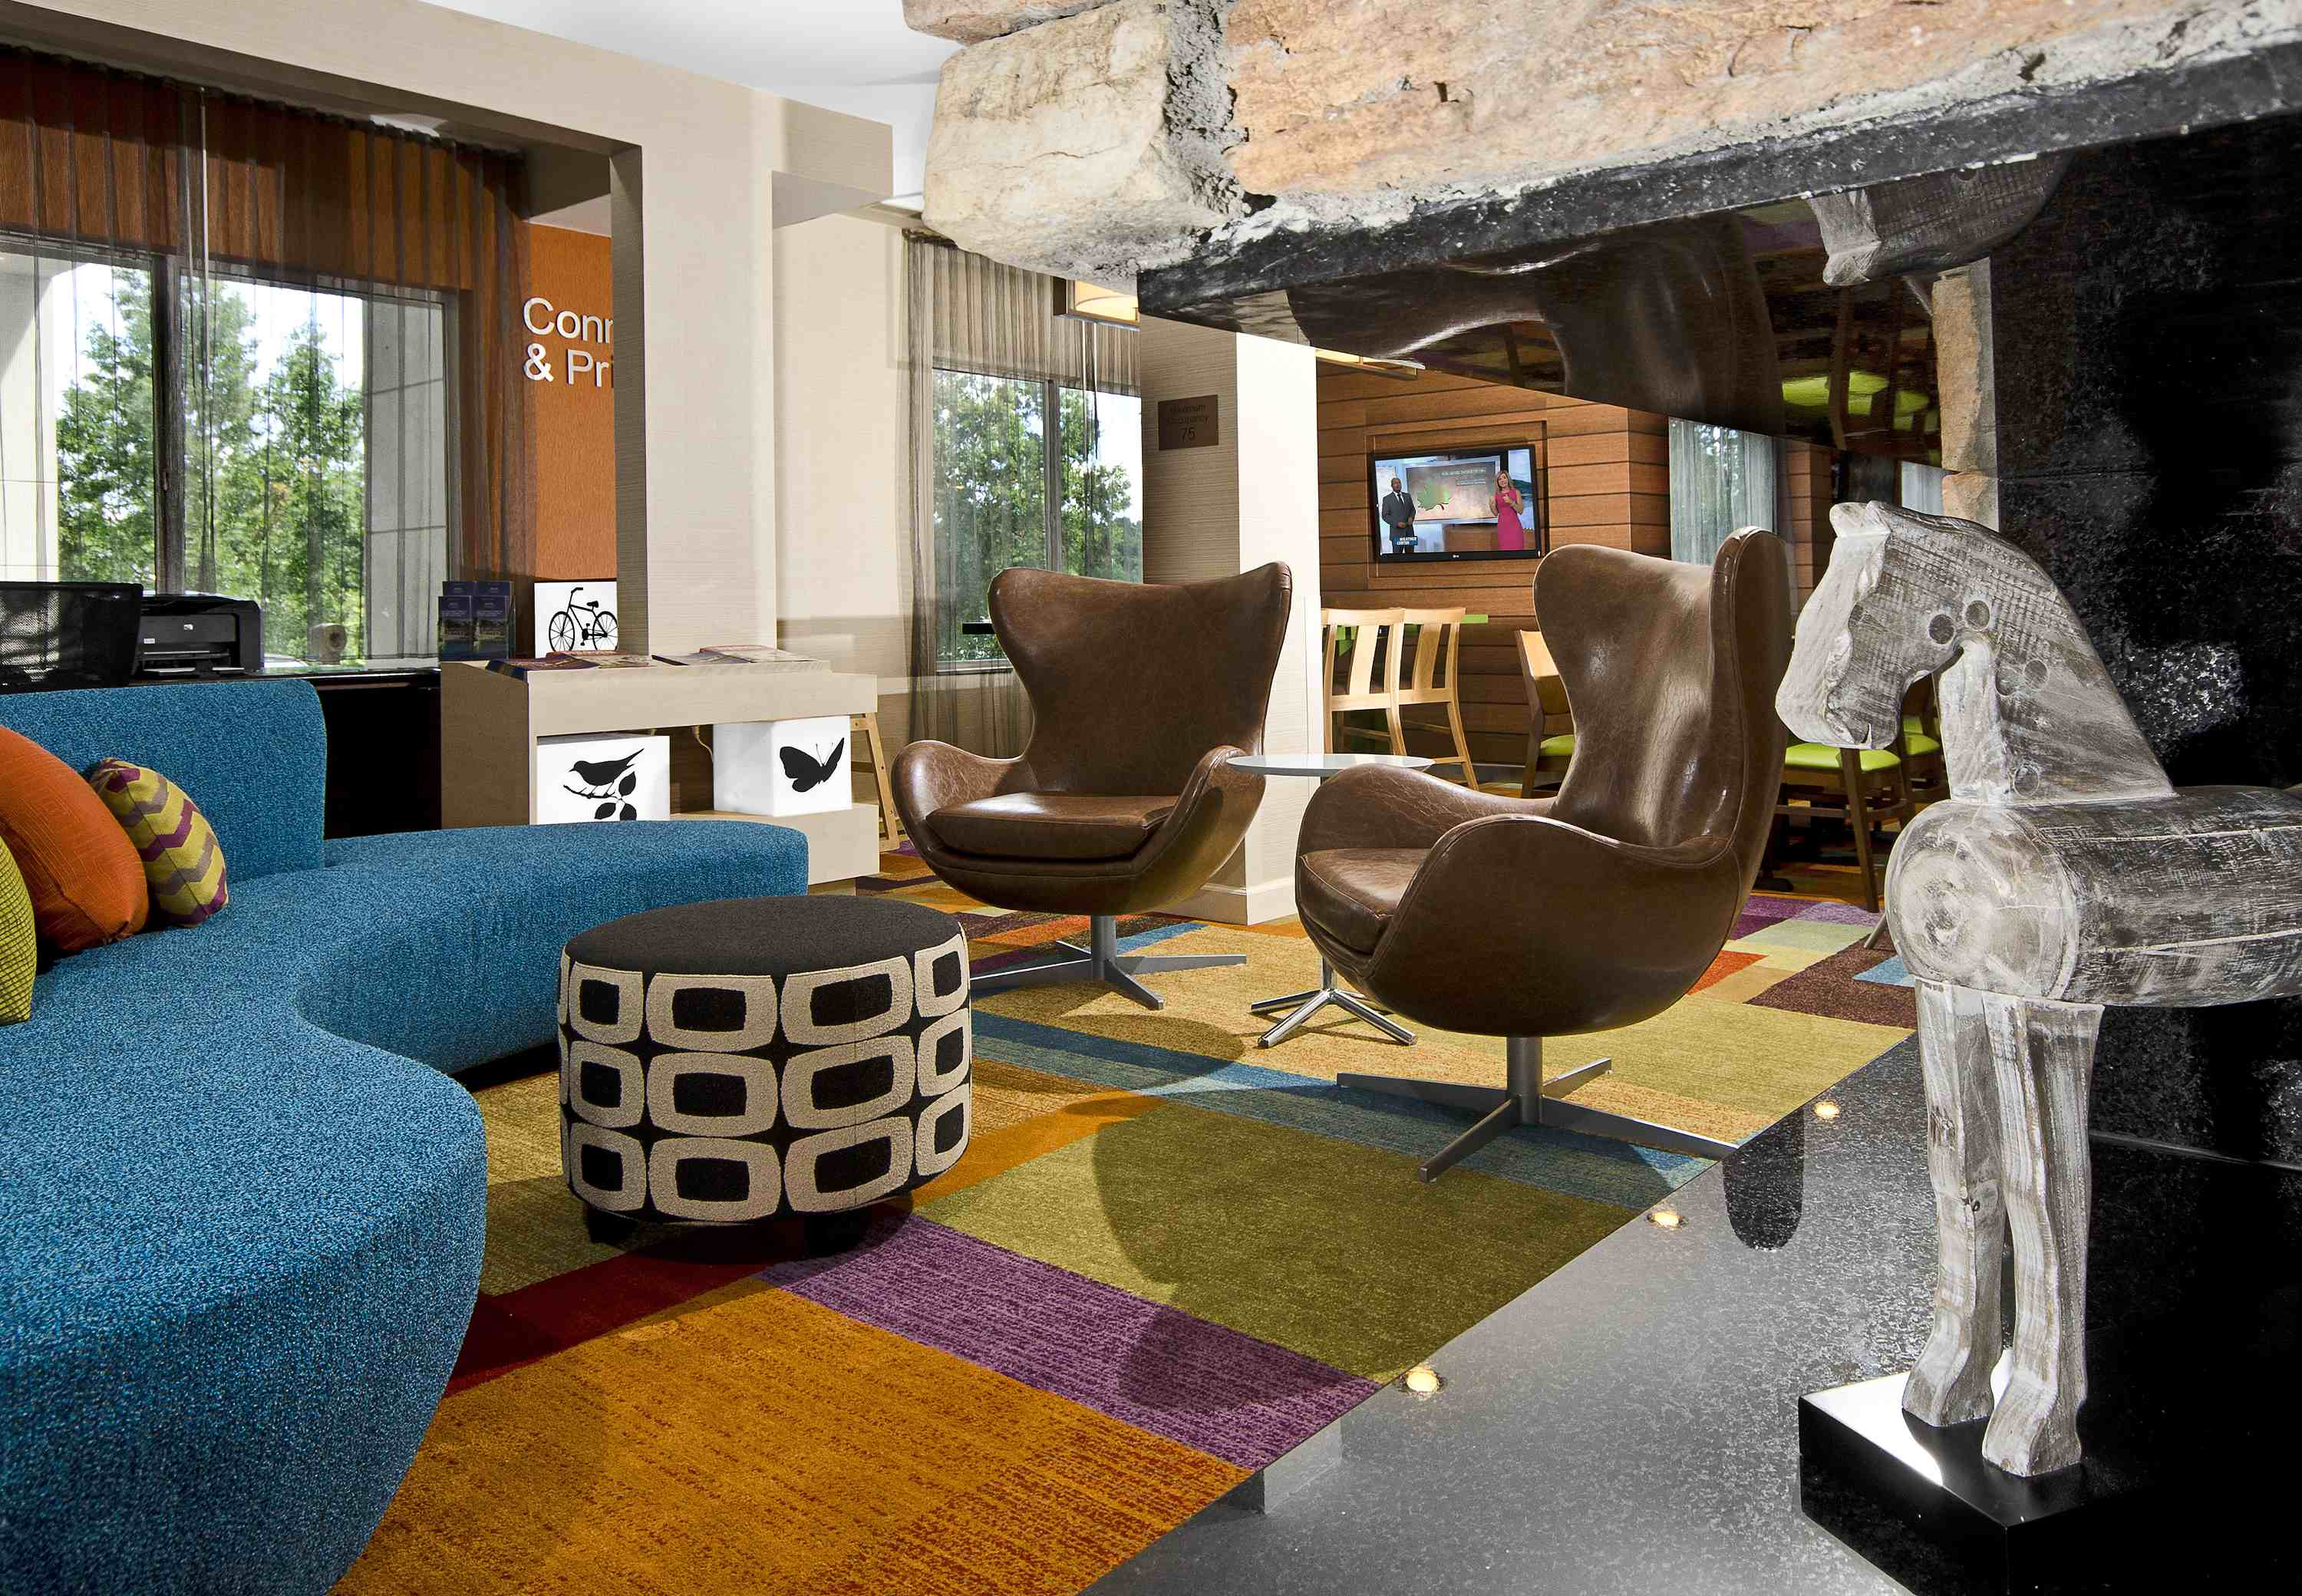 Fairfield Inn & Suites by Marriott Raleigh-Durham Airport/Research Triangle Park image 3